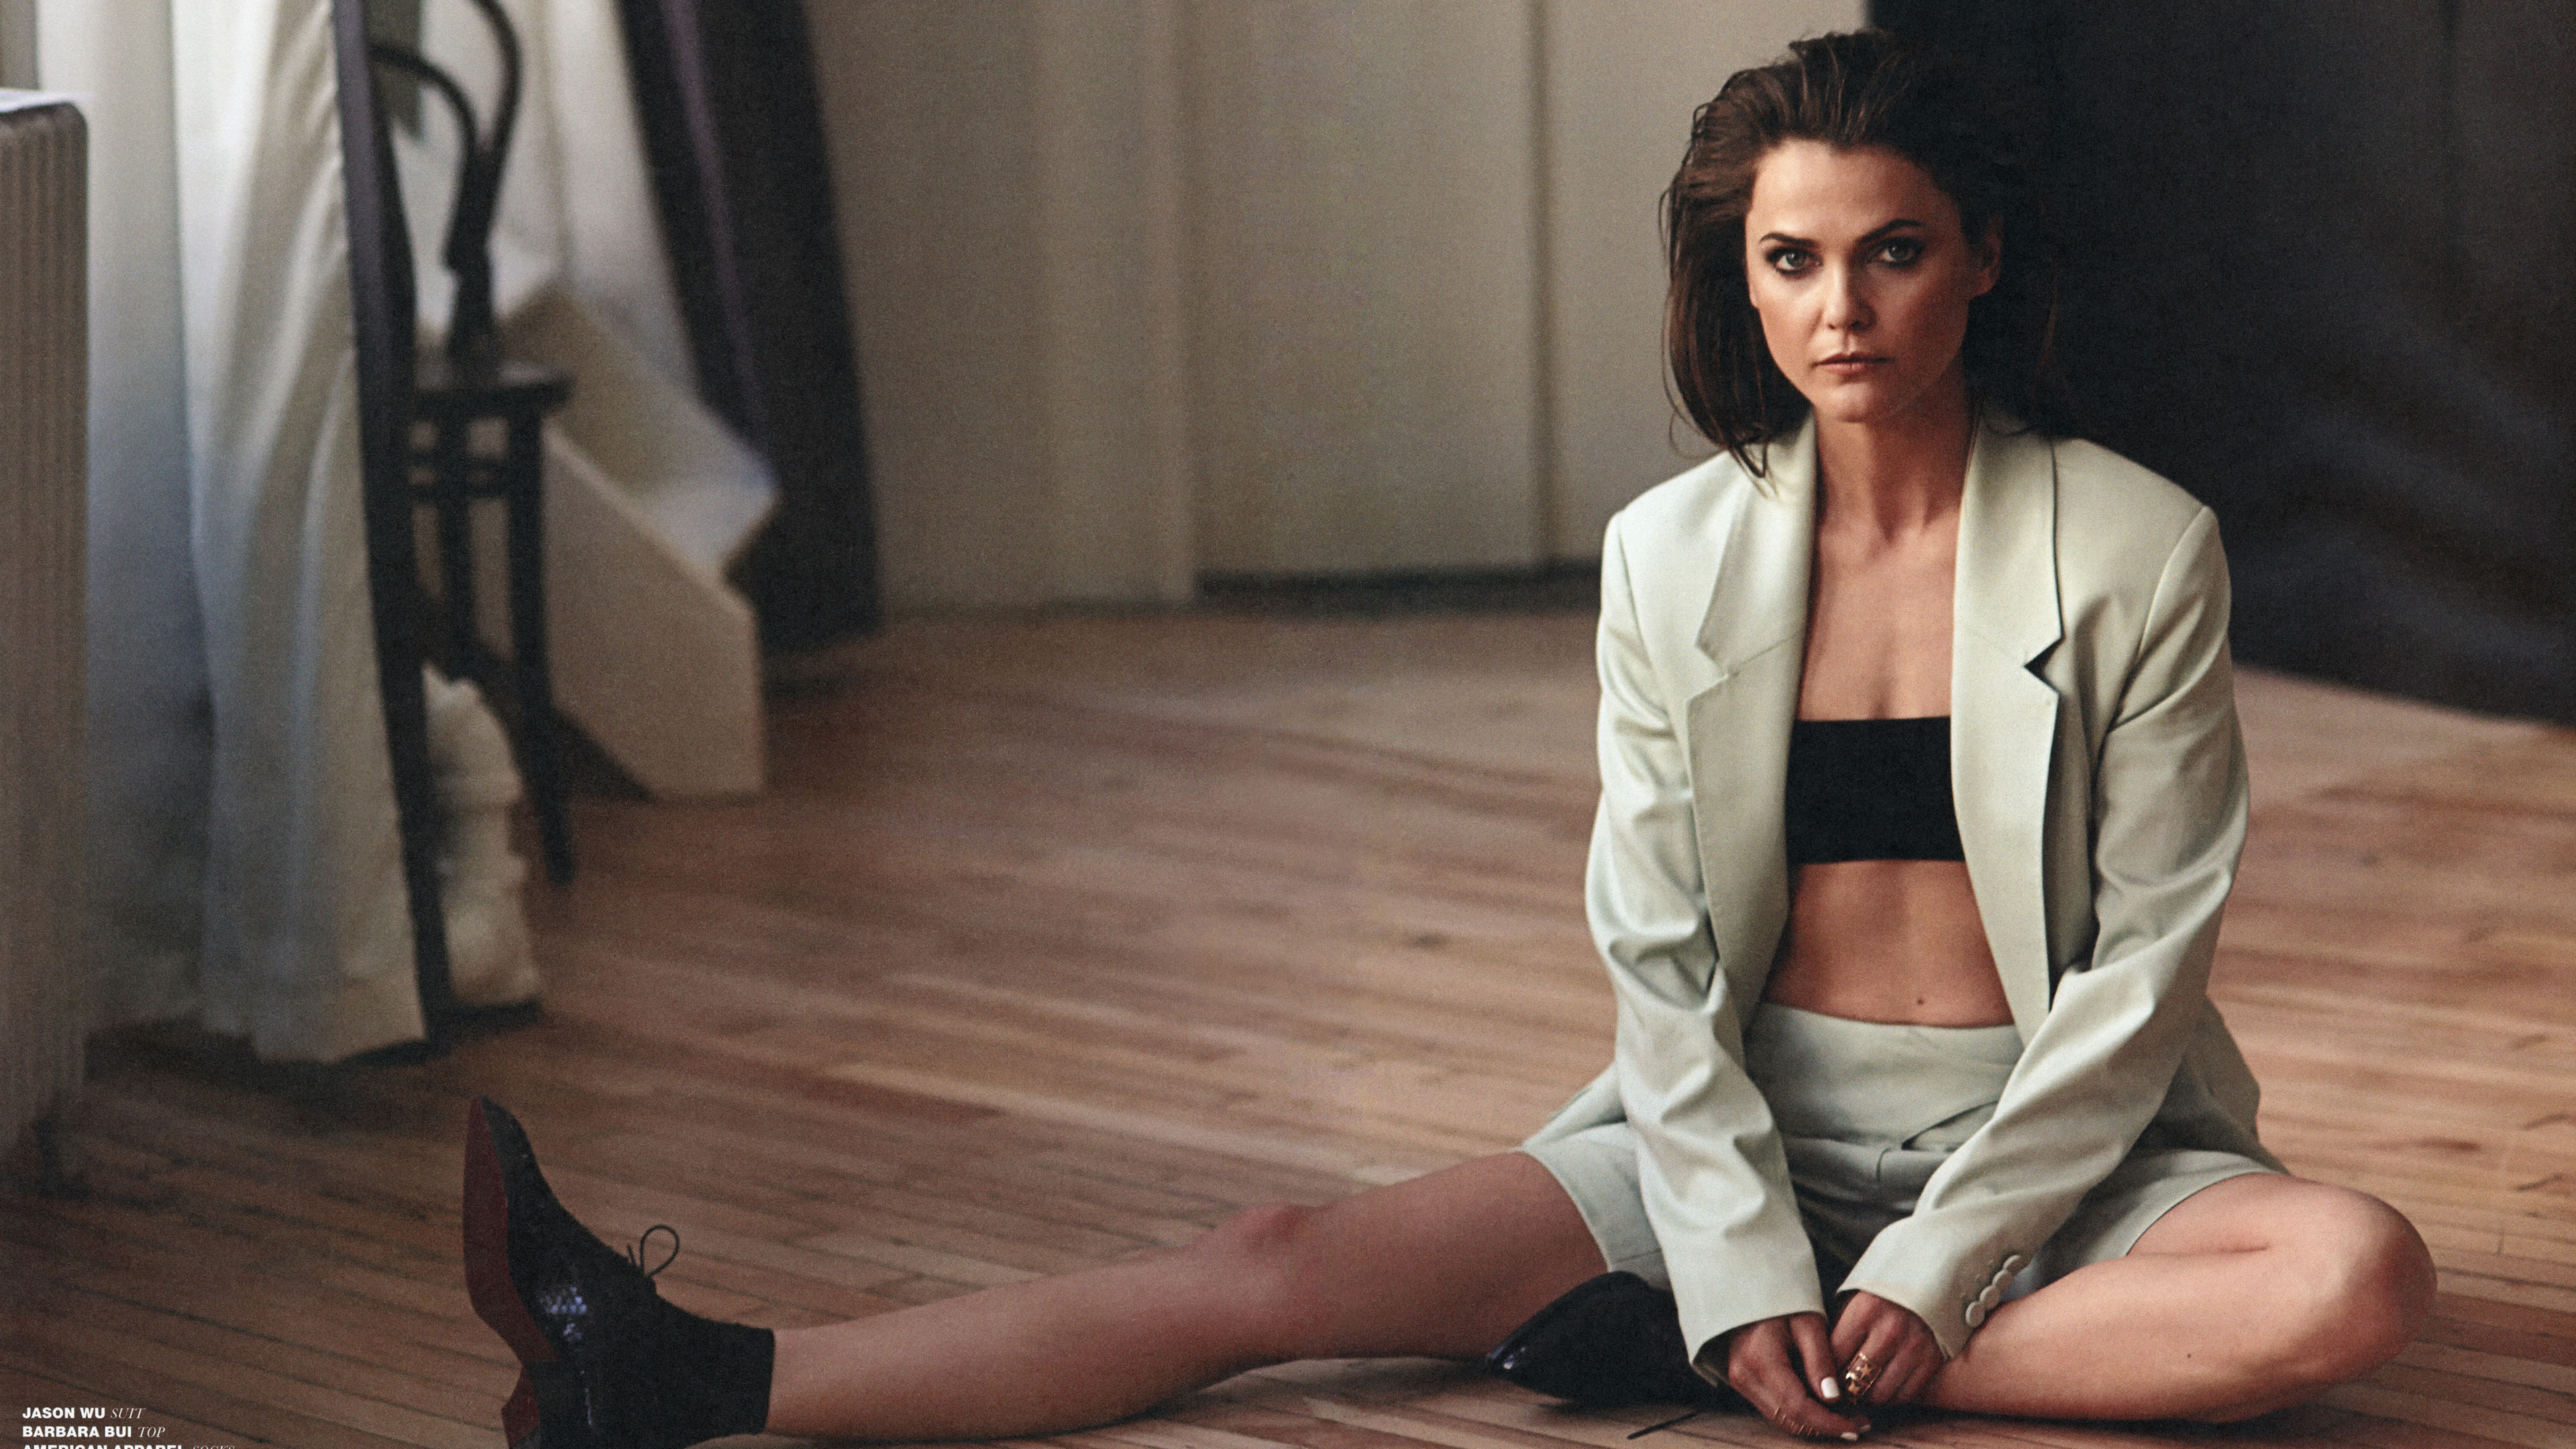 keri russell 1536951939 - Keri Russell - keri russell wallpapers, hd-wallpapers, girls wallpapers, celebrities wallpapers, 4k-wallpapers